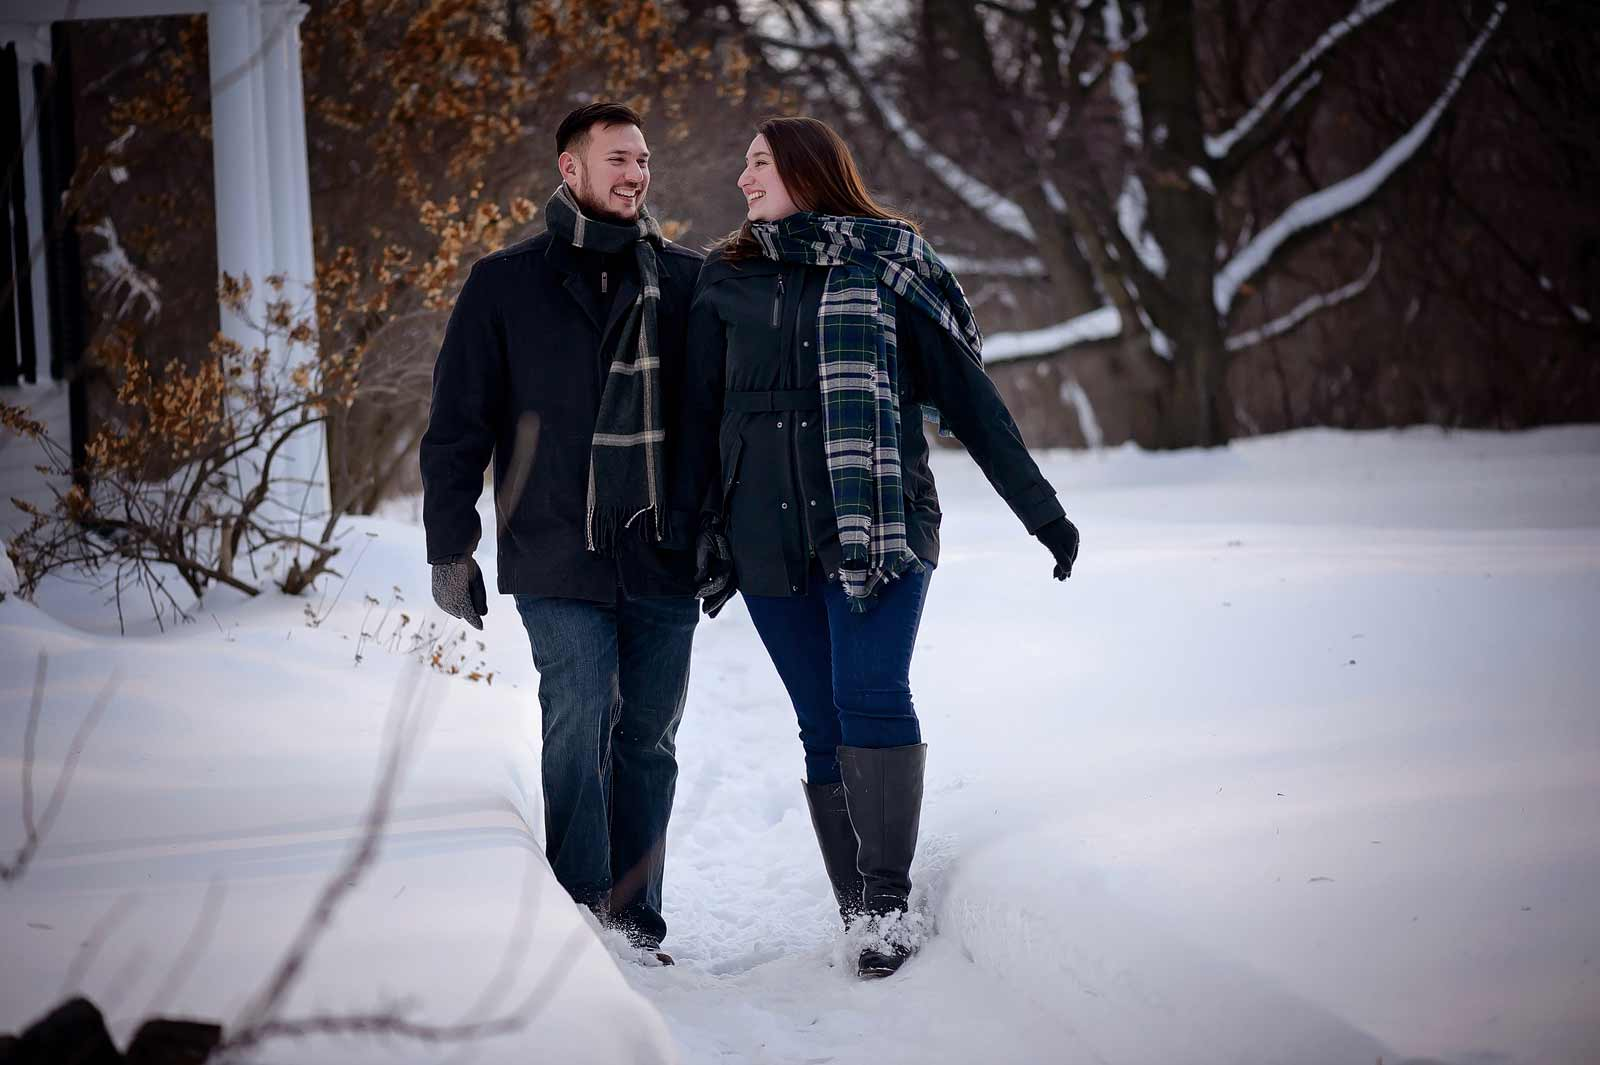 Lauren and Mike's engagement session at Billings Estates in Ottawa walking through the snow in the winter